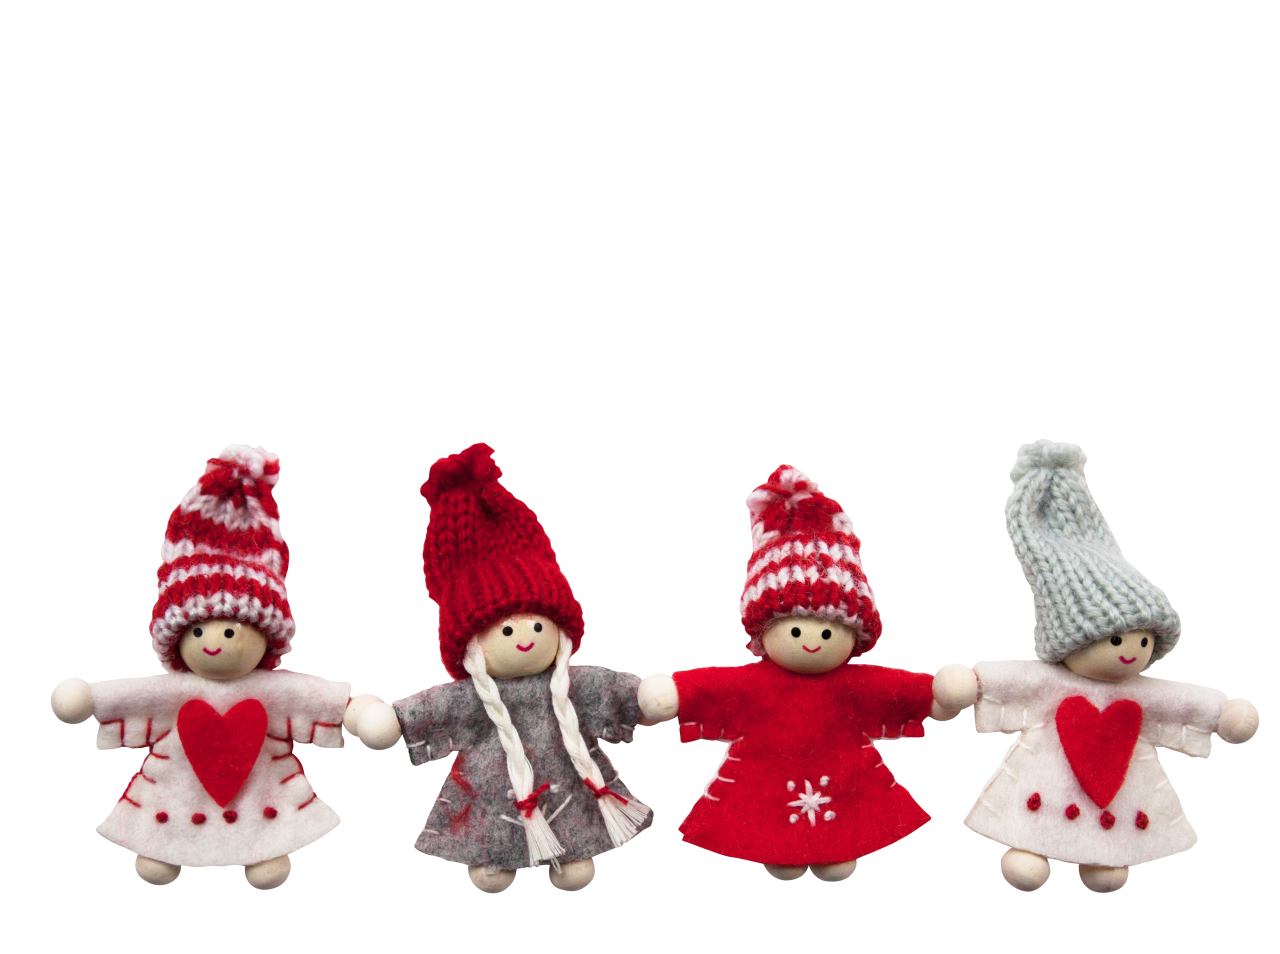 Four Cute Christmas Dolls PNG Image